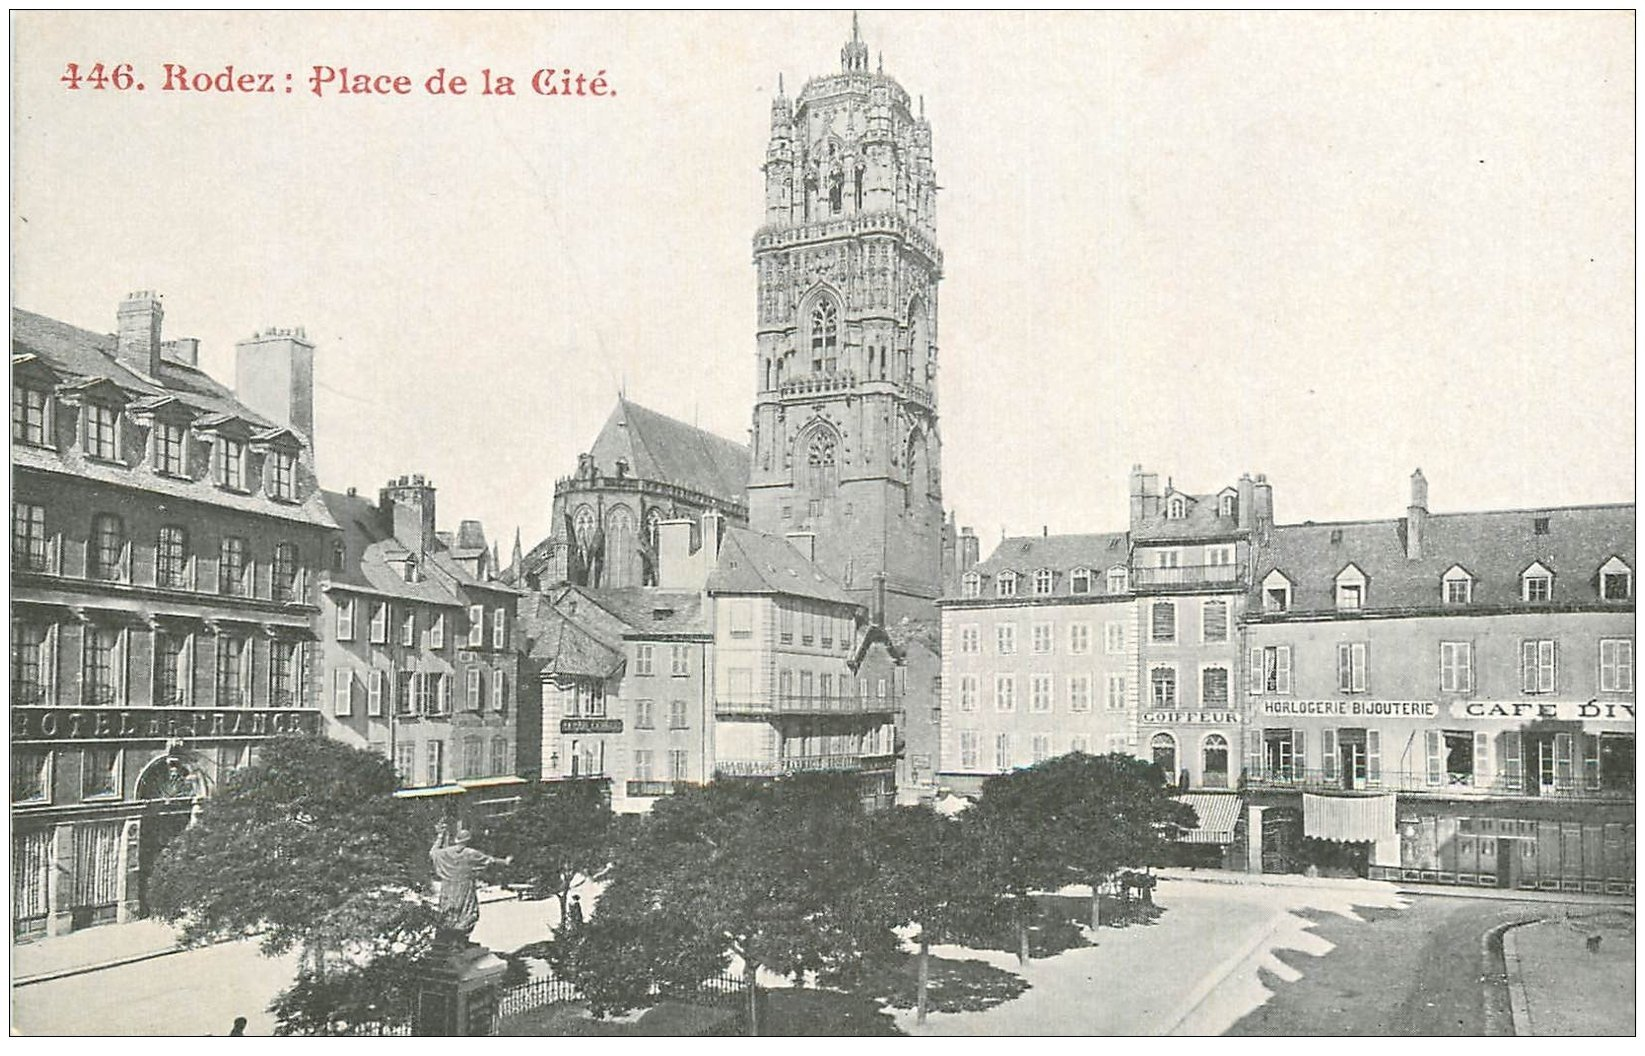 12 rodez place de la cit h tel de france coiffeur et for Carte de france hotel